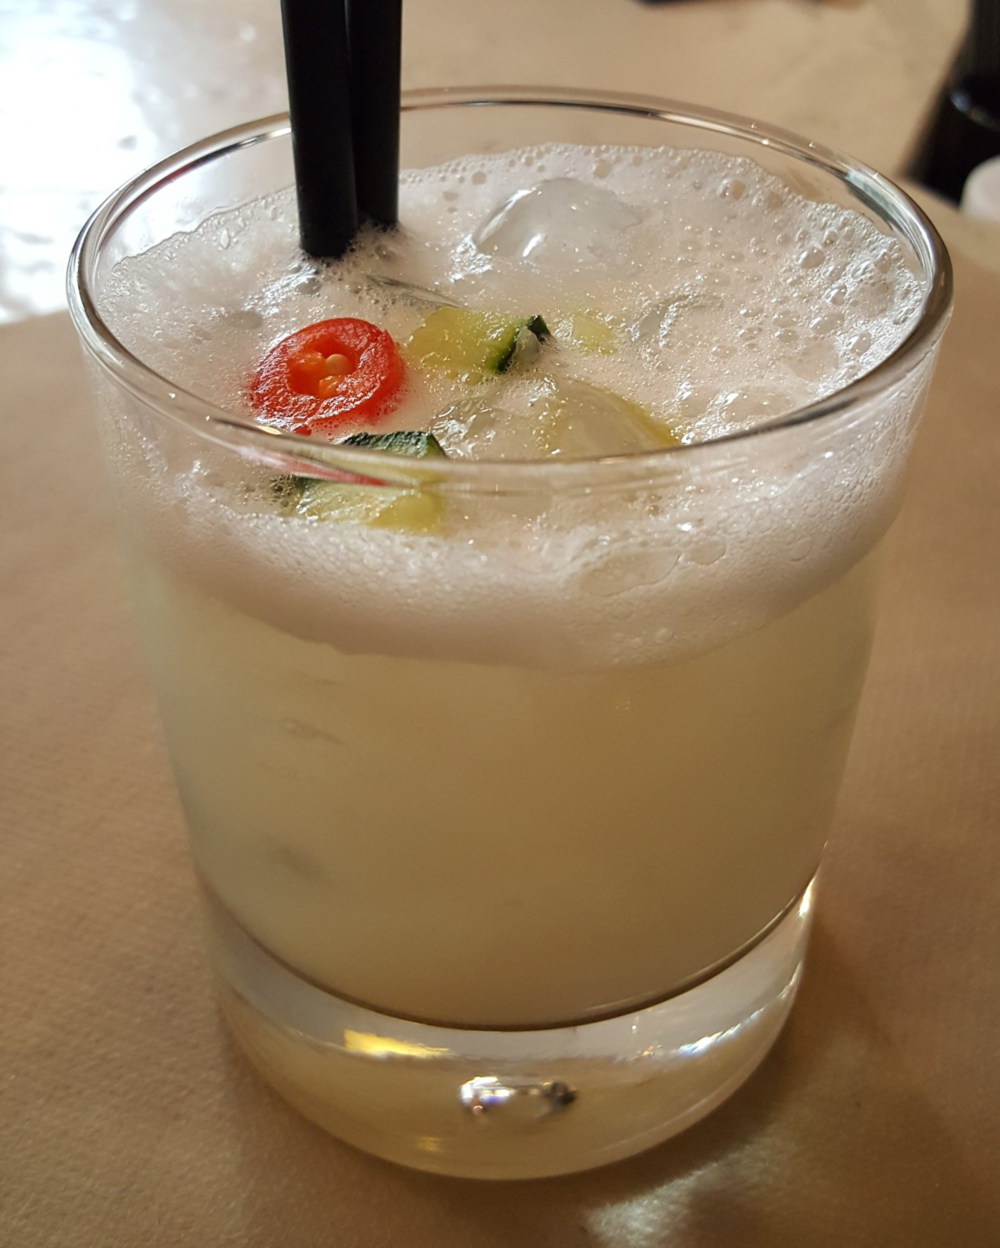 Tequila chili sour